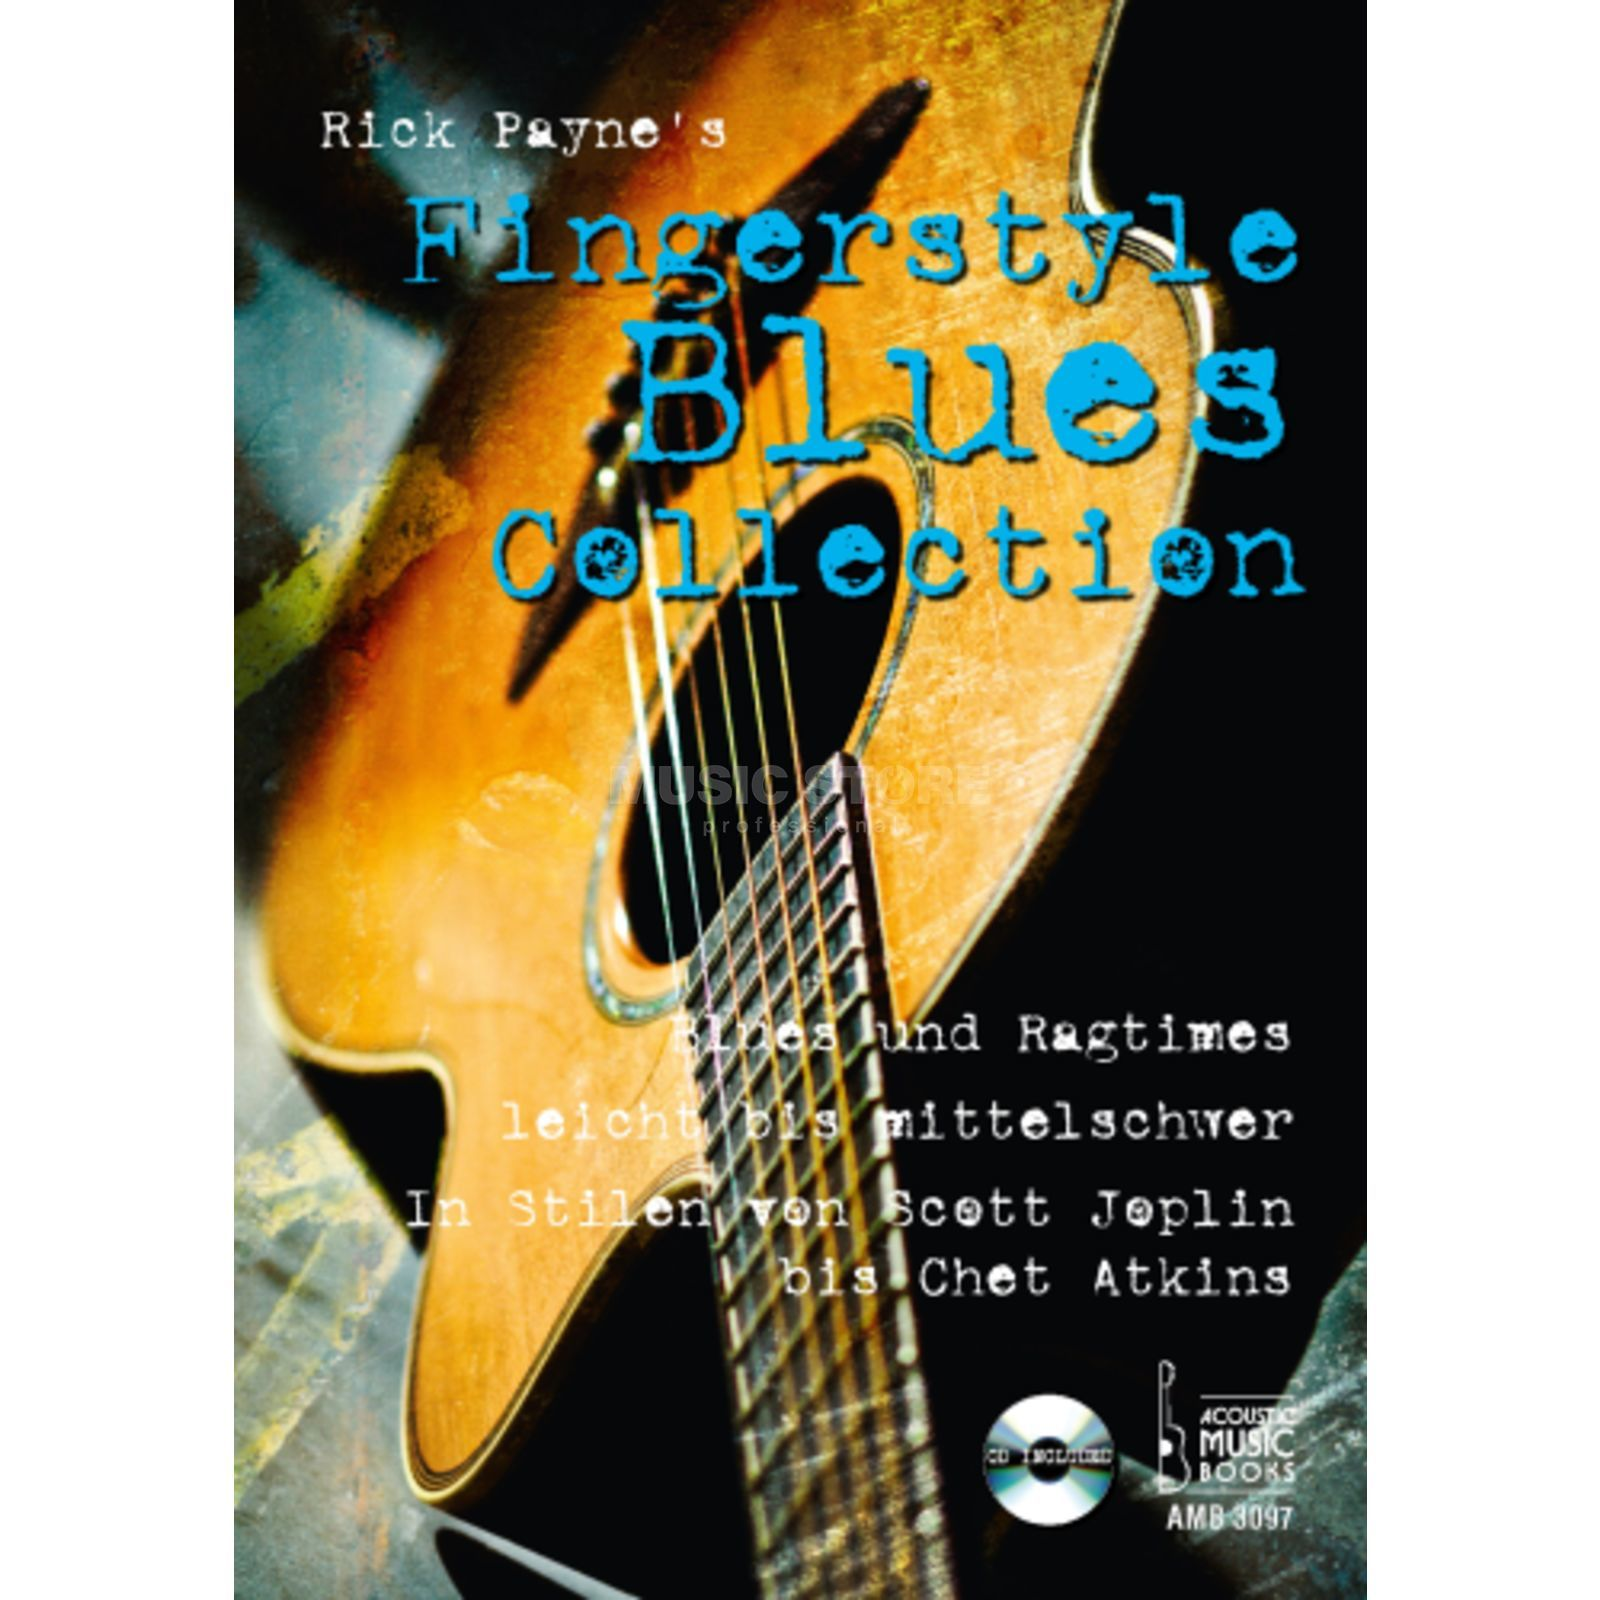 Acoustic Music Books Fingerstyle Blues Collection Rick Payne, Gitarre, mit CD Produktbild